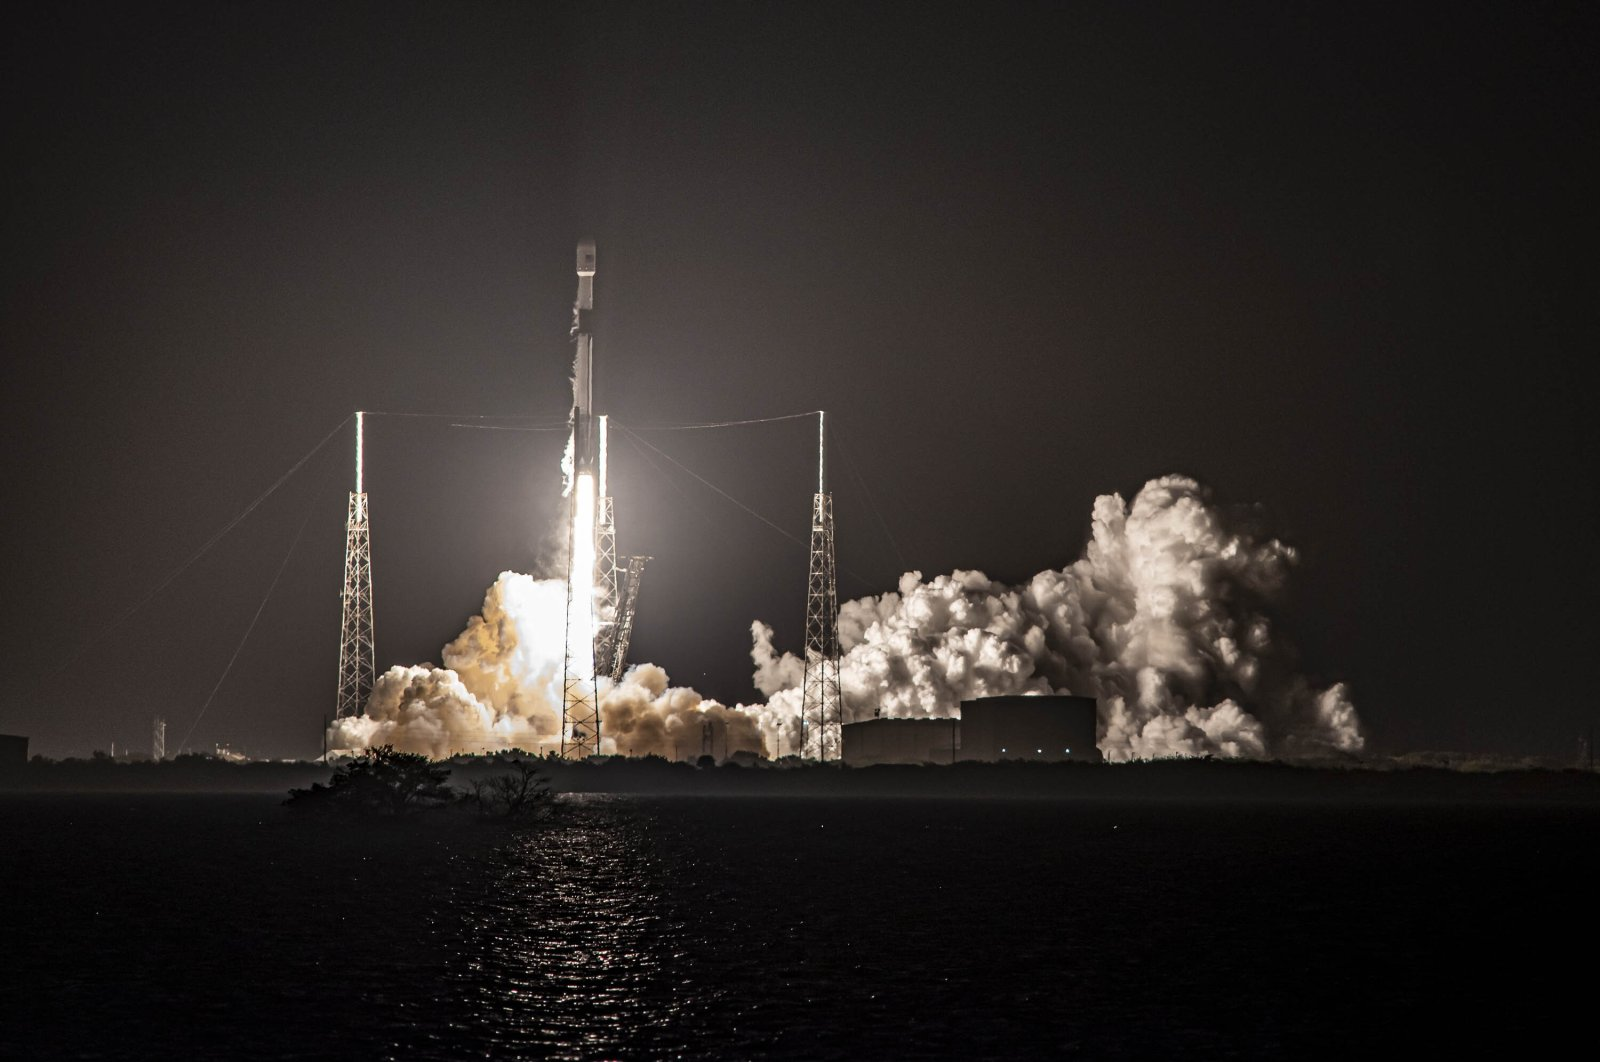 Turkey's new satellite Türksat 5A, carried by a SpaceX Falcon 9 rocket, launches from Cape Canaveral Space Force Station, in Cape Canaveral, Florida, U.S., Jan. 7, 2020. (Reuters Photo)